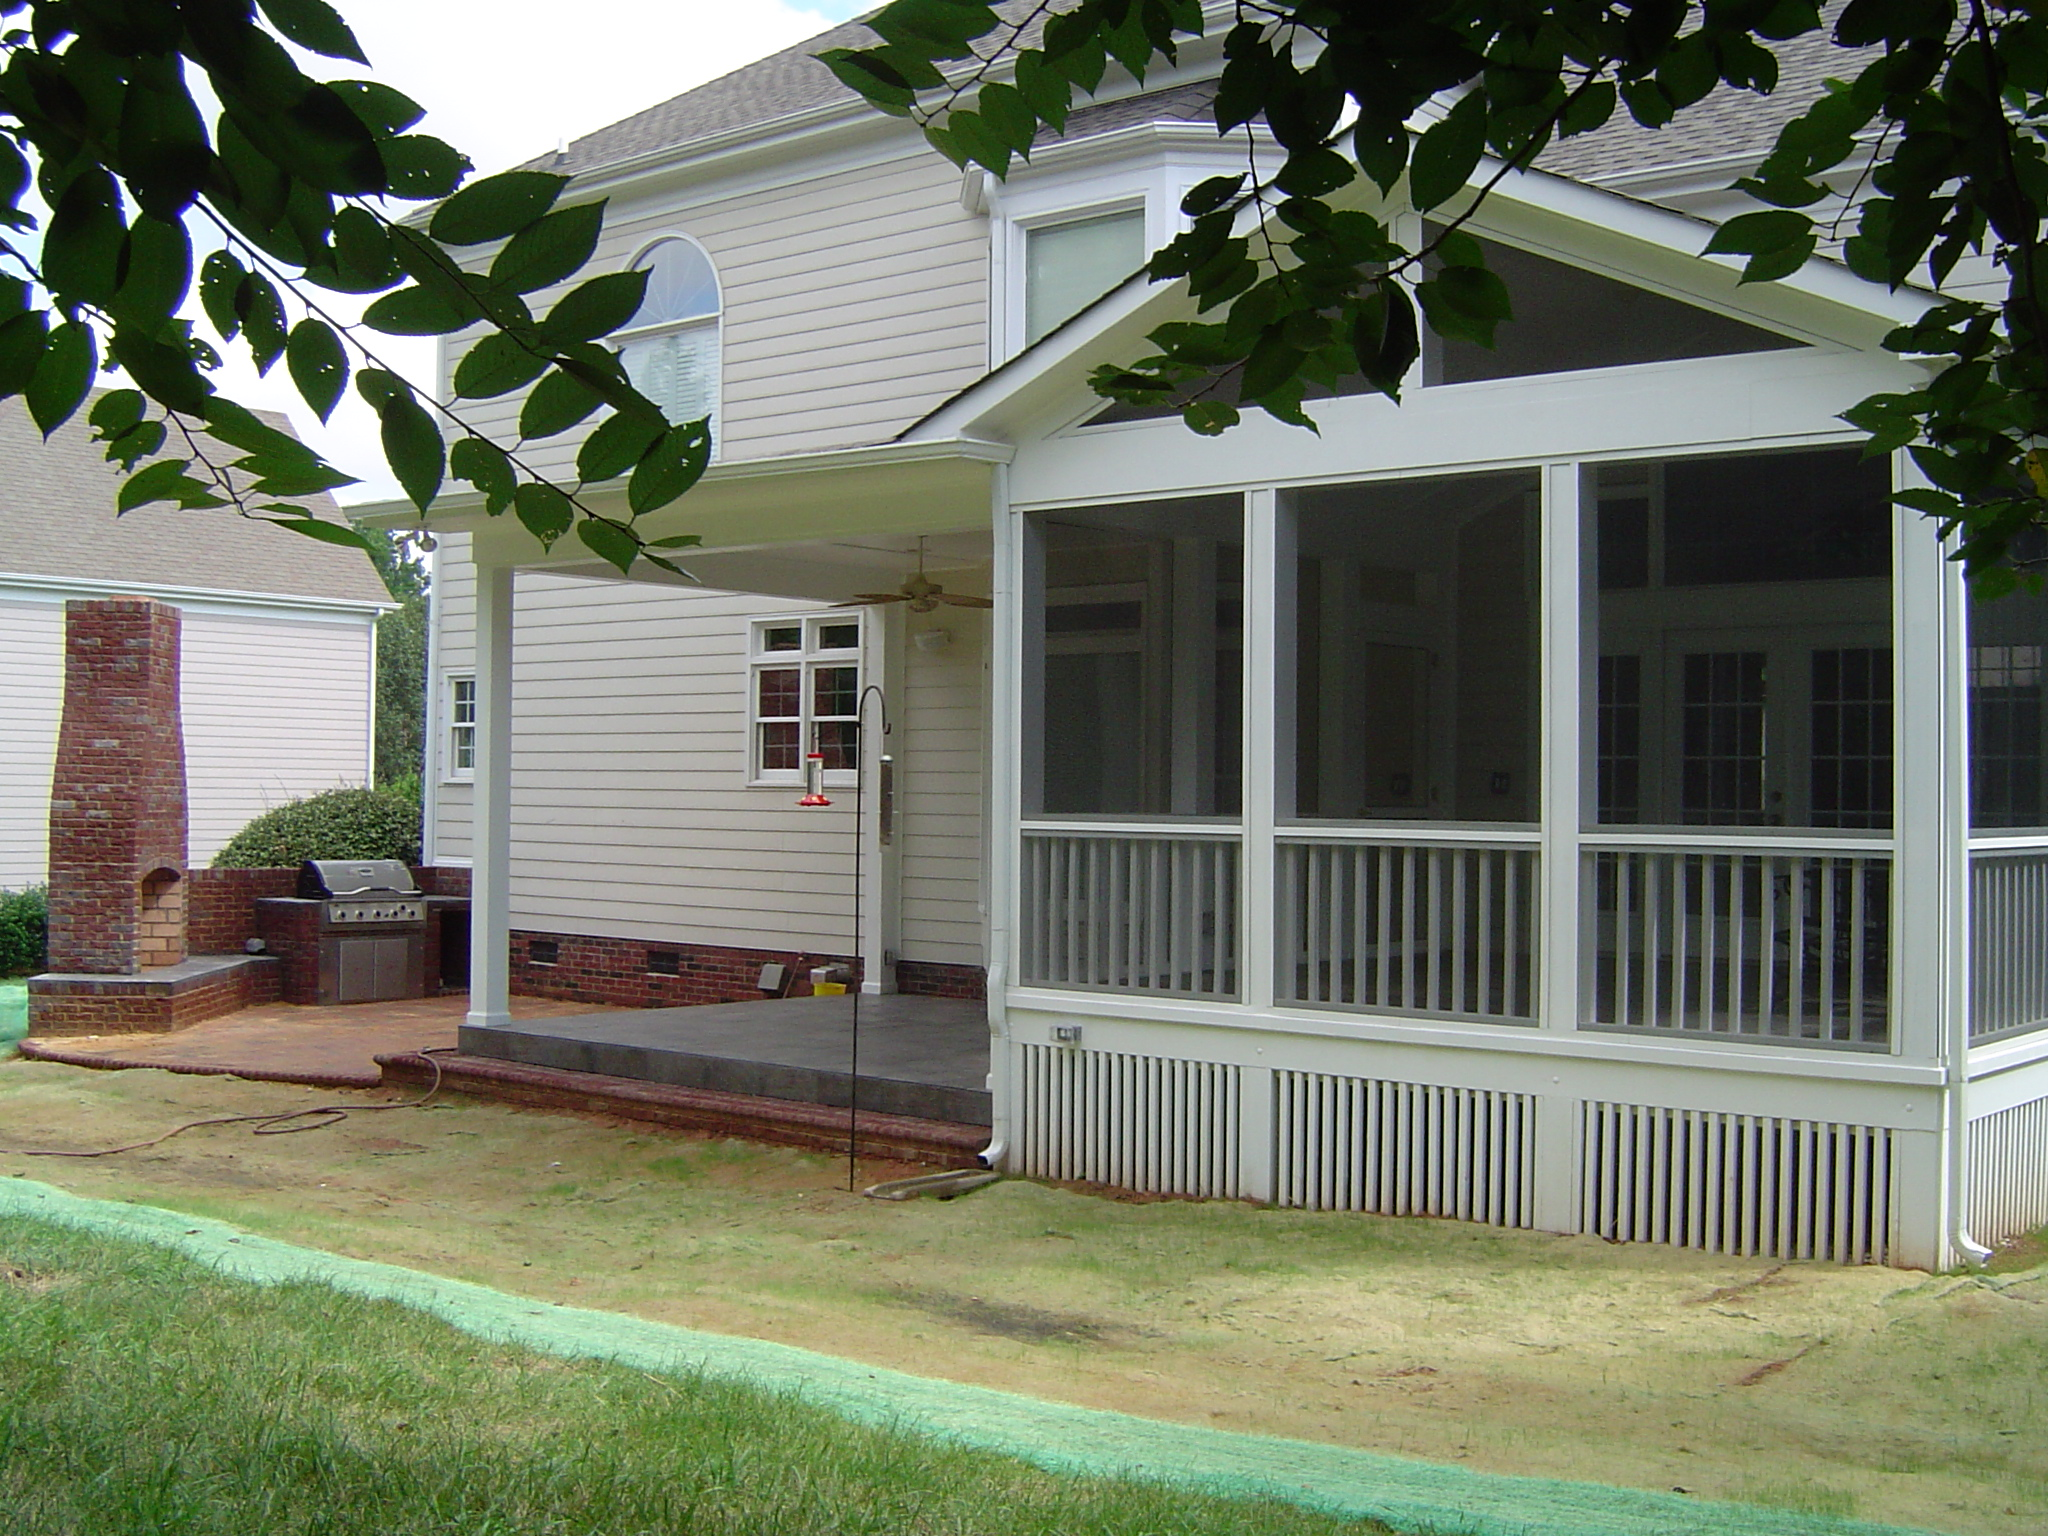 decks in combination sc porch deck close tag columbia custom screened view and screen porches patios builder